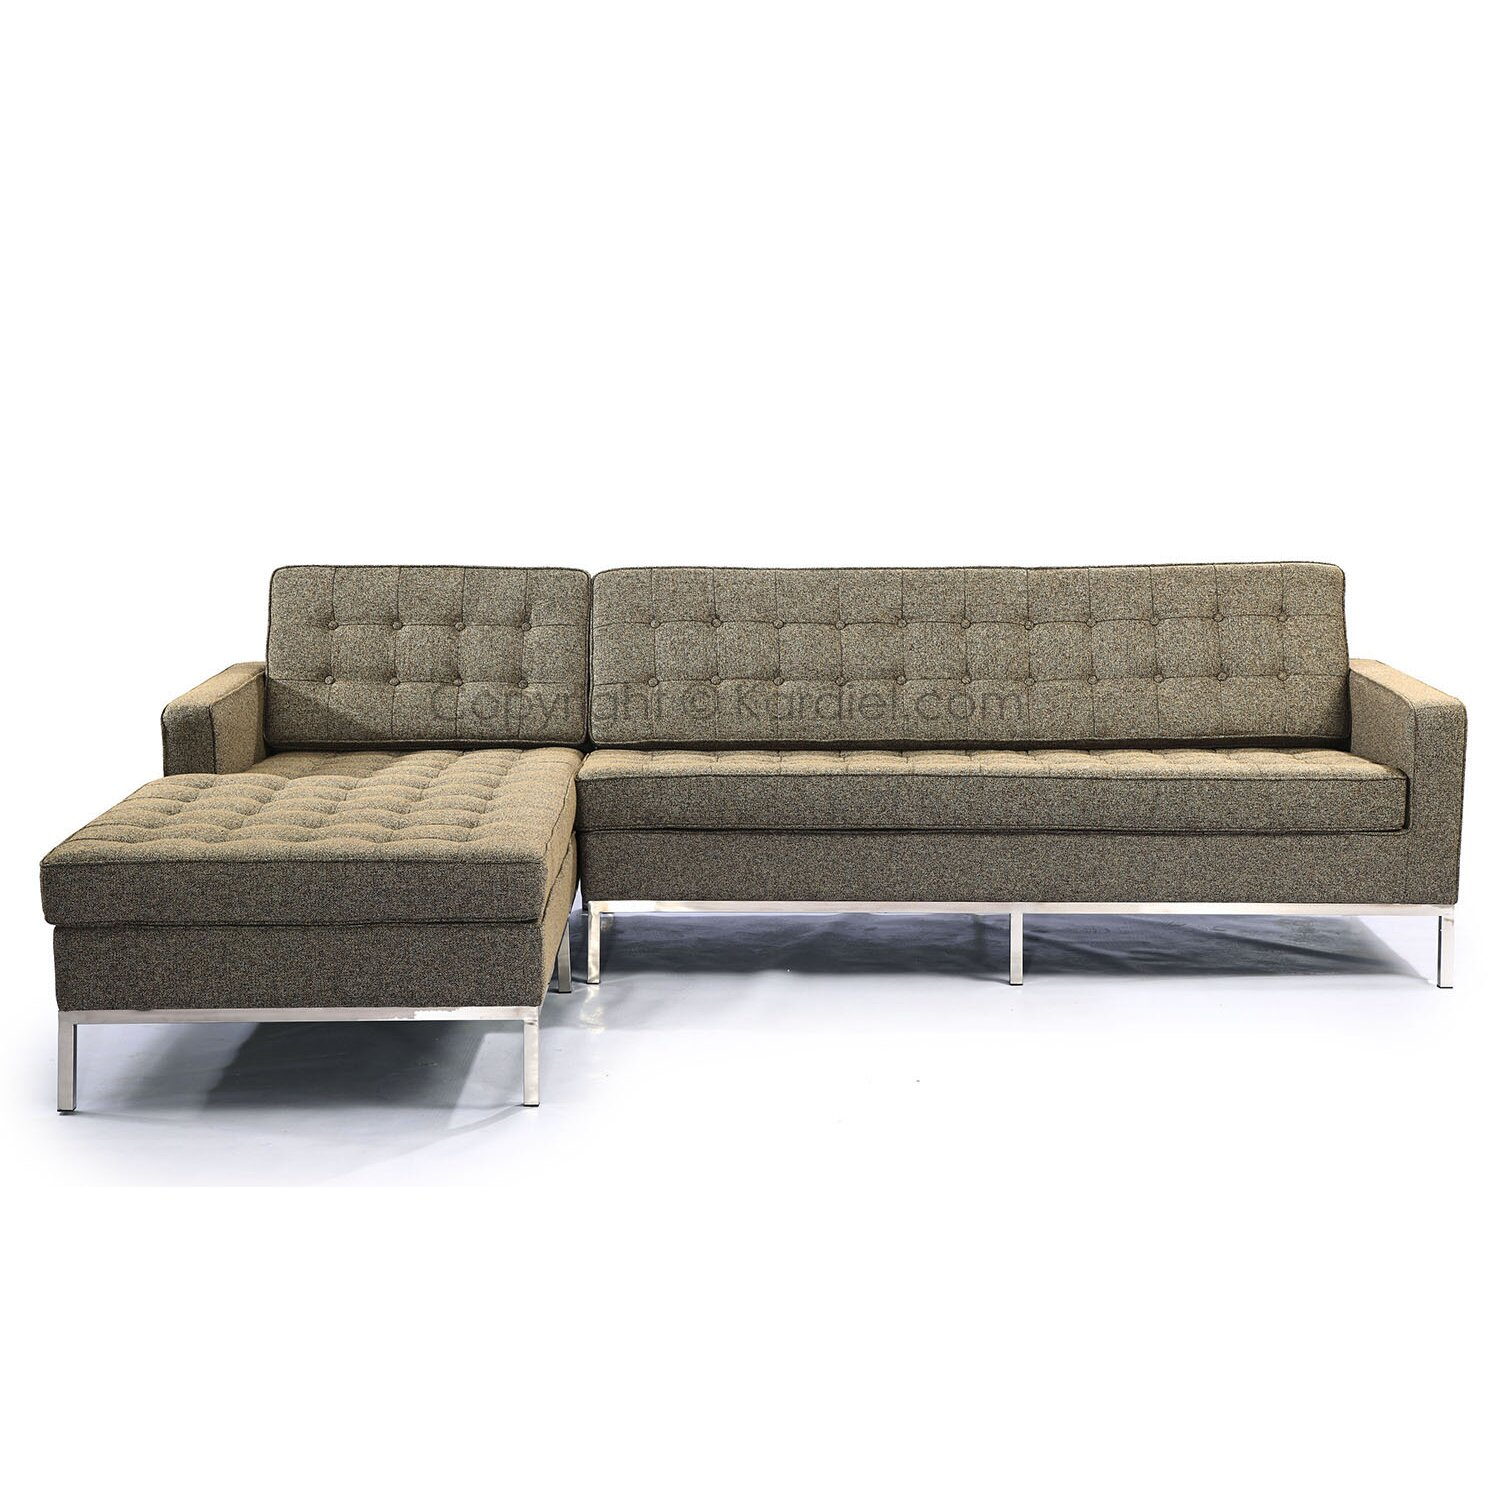 Florence sectional wayfair for Florence modern sectional sofa